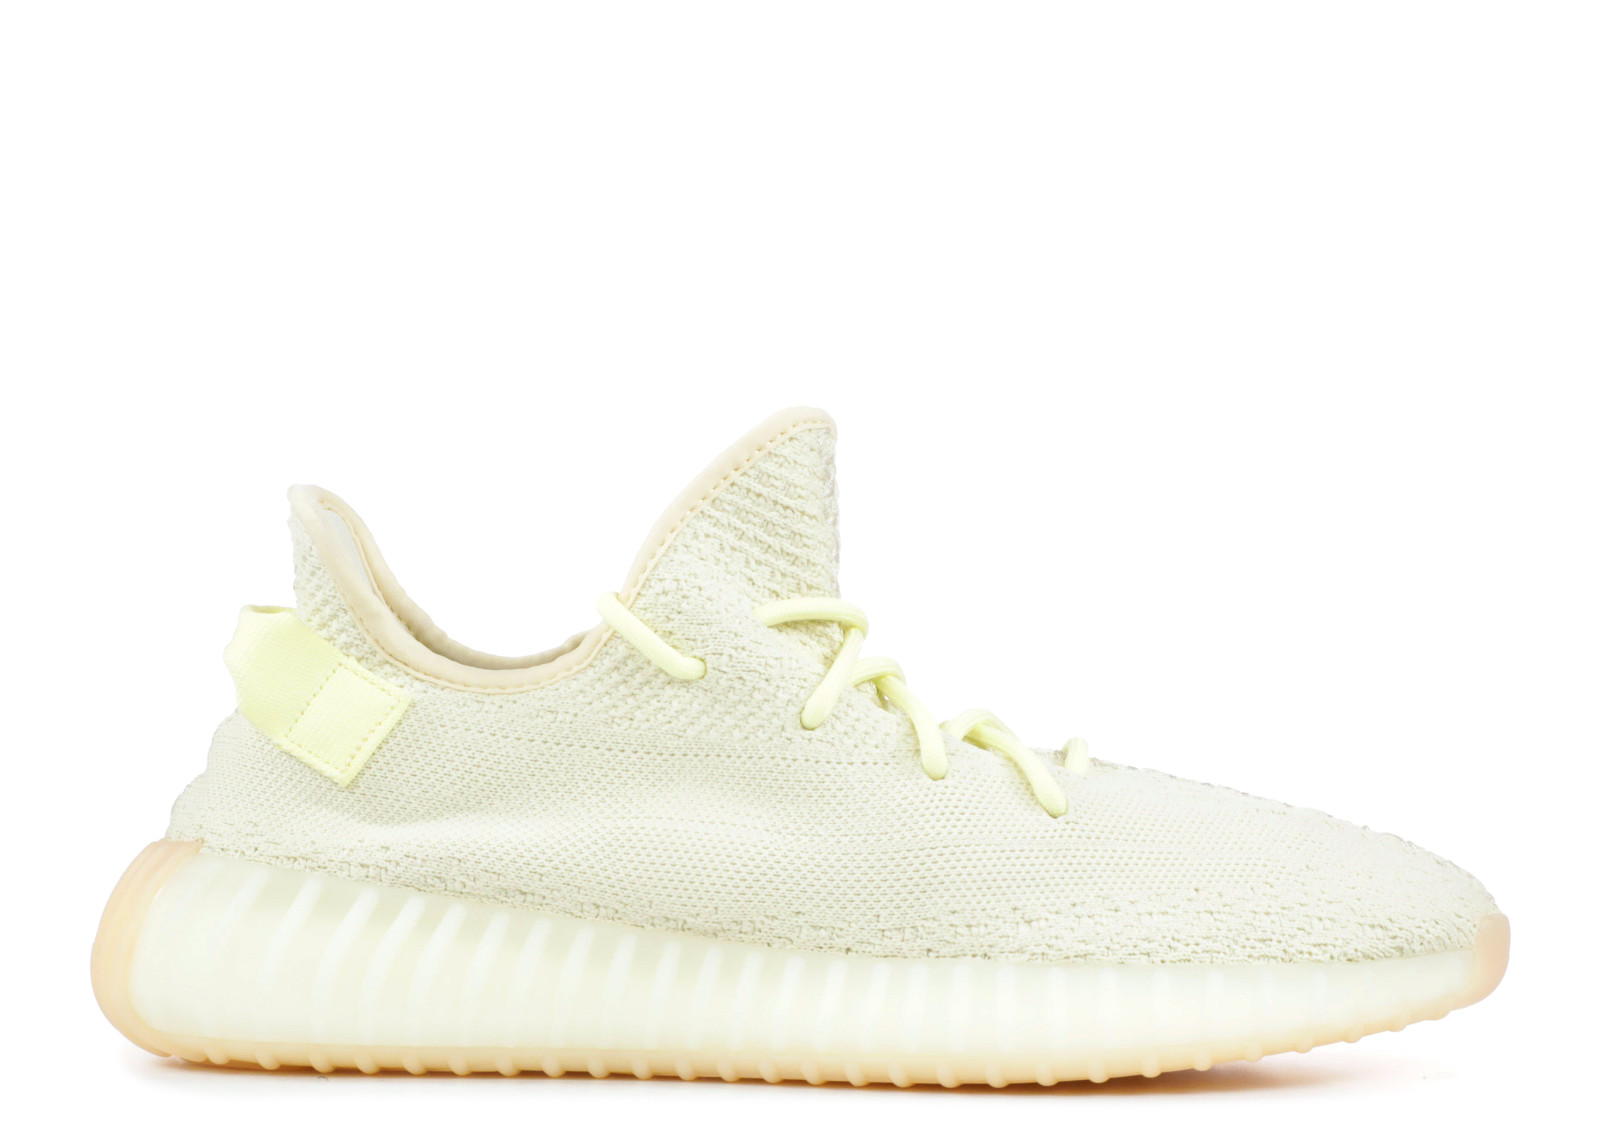 buy popular c51bc 167af Details about ADIDAS YEEZY BOOST 350 V2 'BUTTER' - F36980